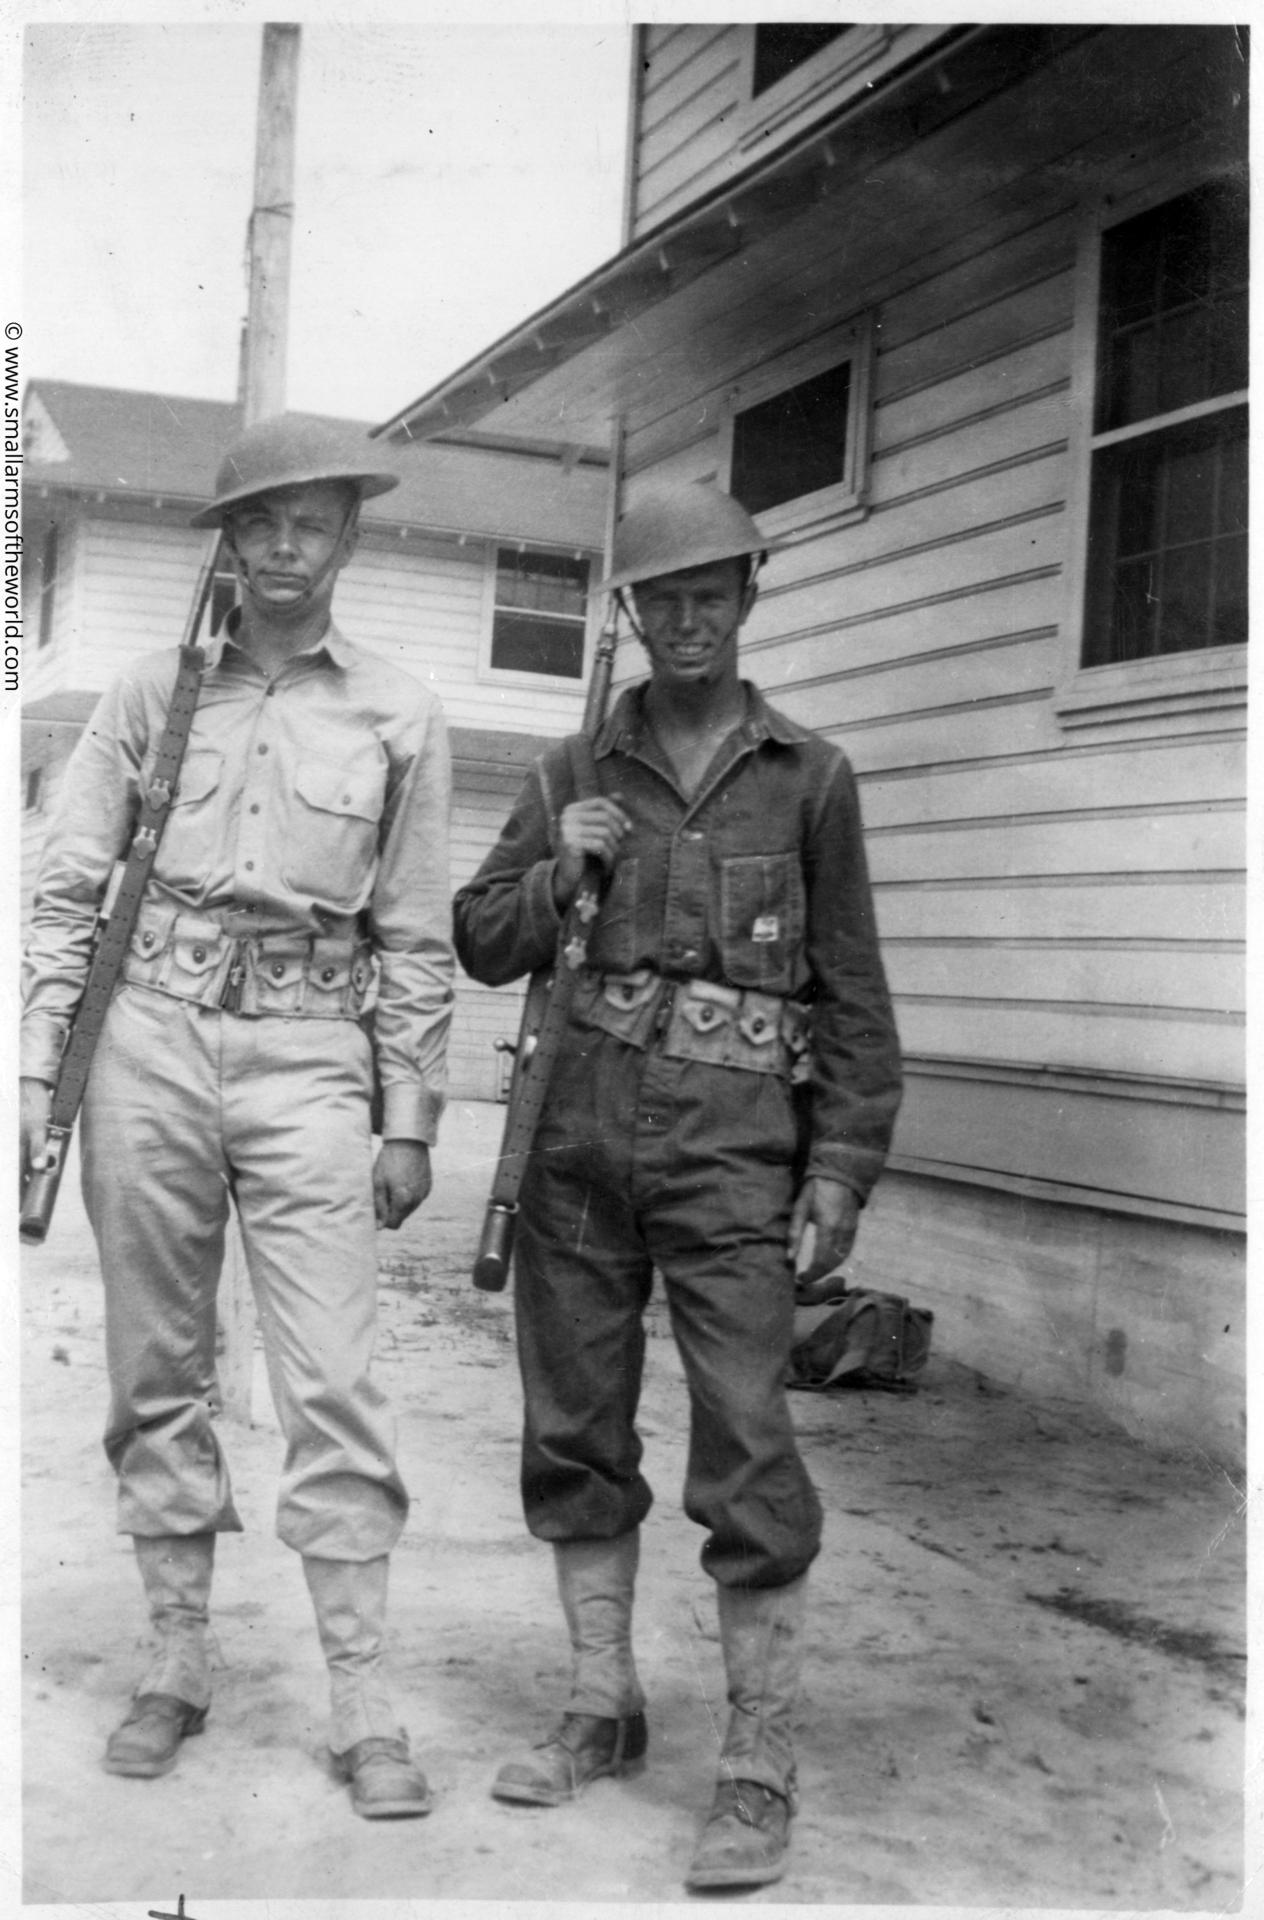 Two US soldiers with M1903 Springfield rifles next to a1930s style barracks.